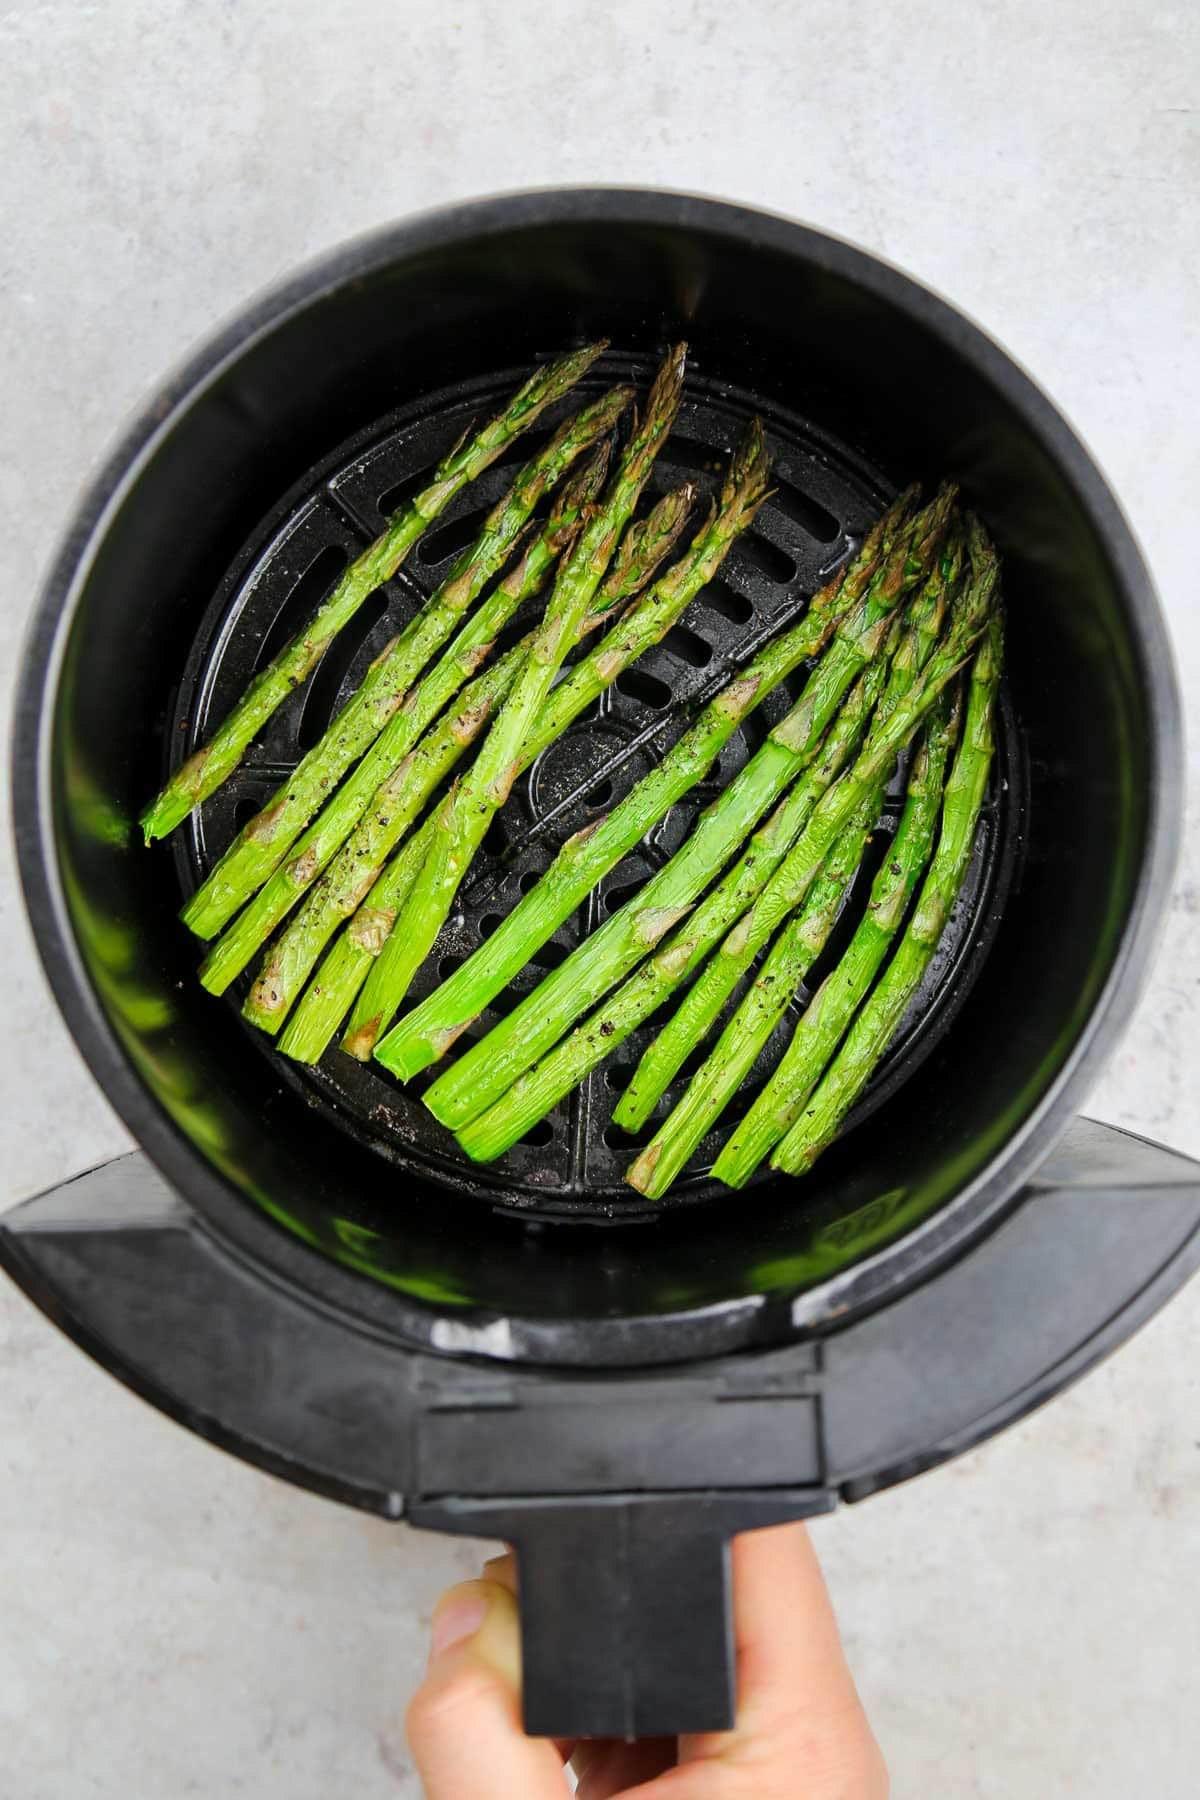 Ready and crispy asparagus in the air fryer basket.